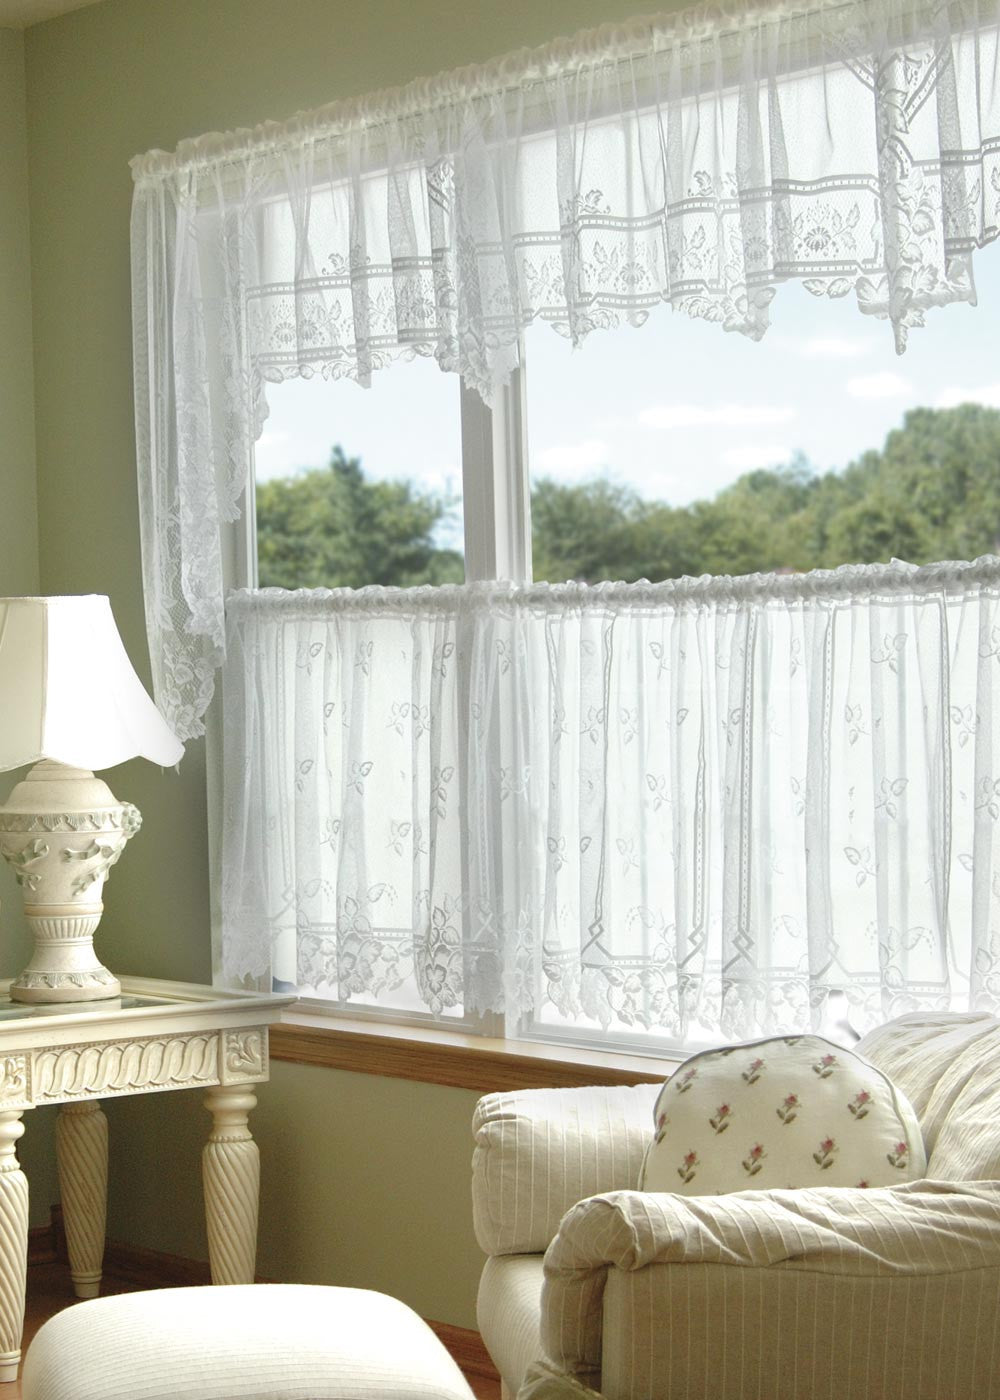 Heritage Lace Heirloom 60-Inch Wide by 22-Inch Drop Valance Ecru